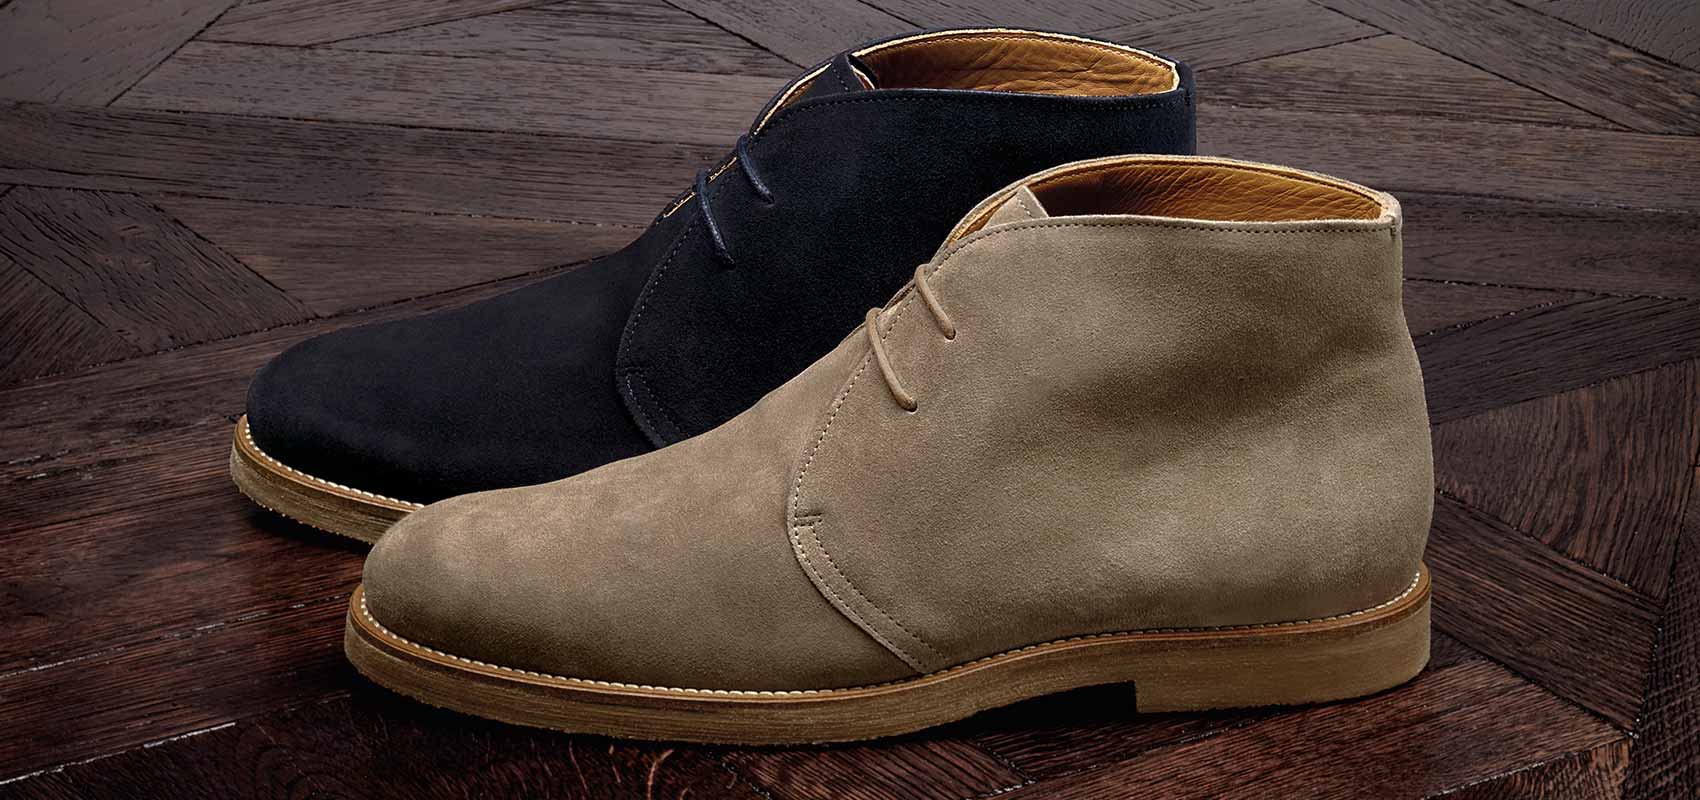 Casual suede desert boots